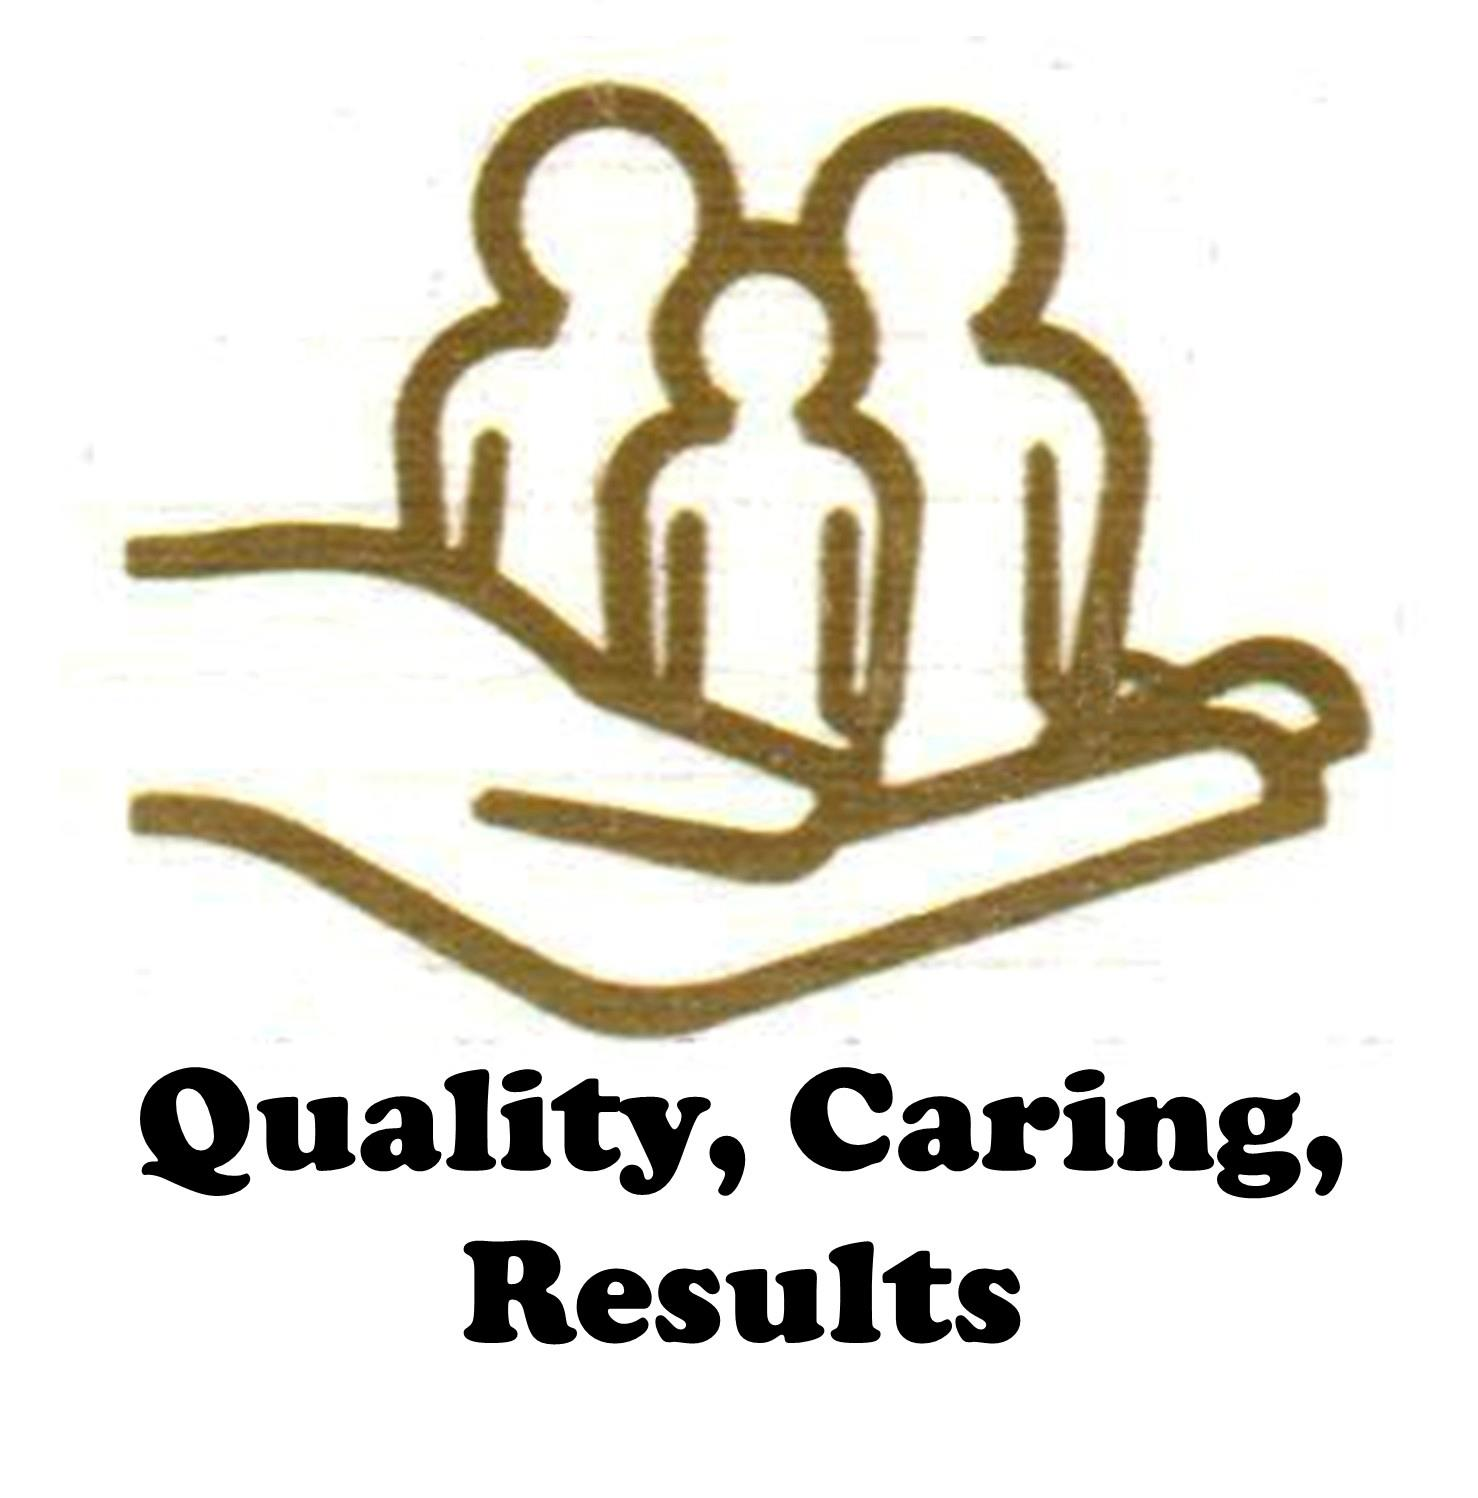 Tevel Chiropractic Quality Caring Results